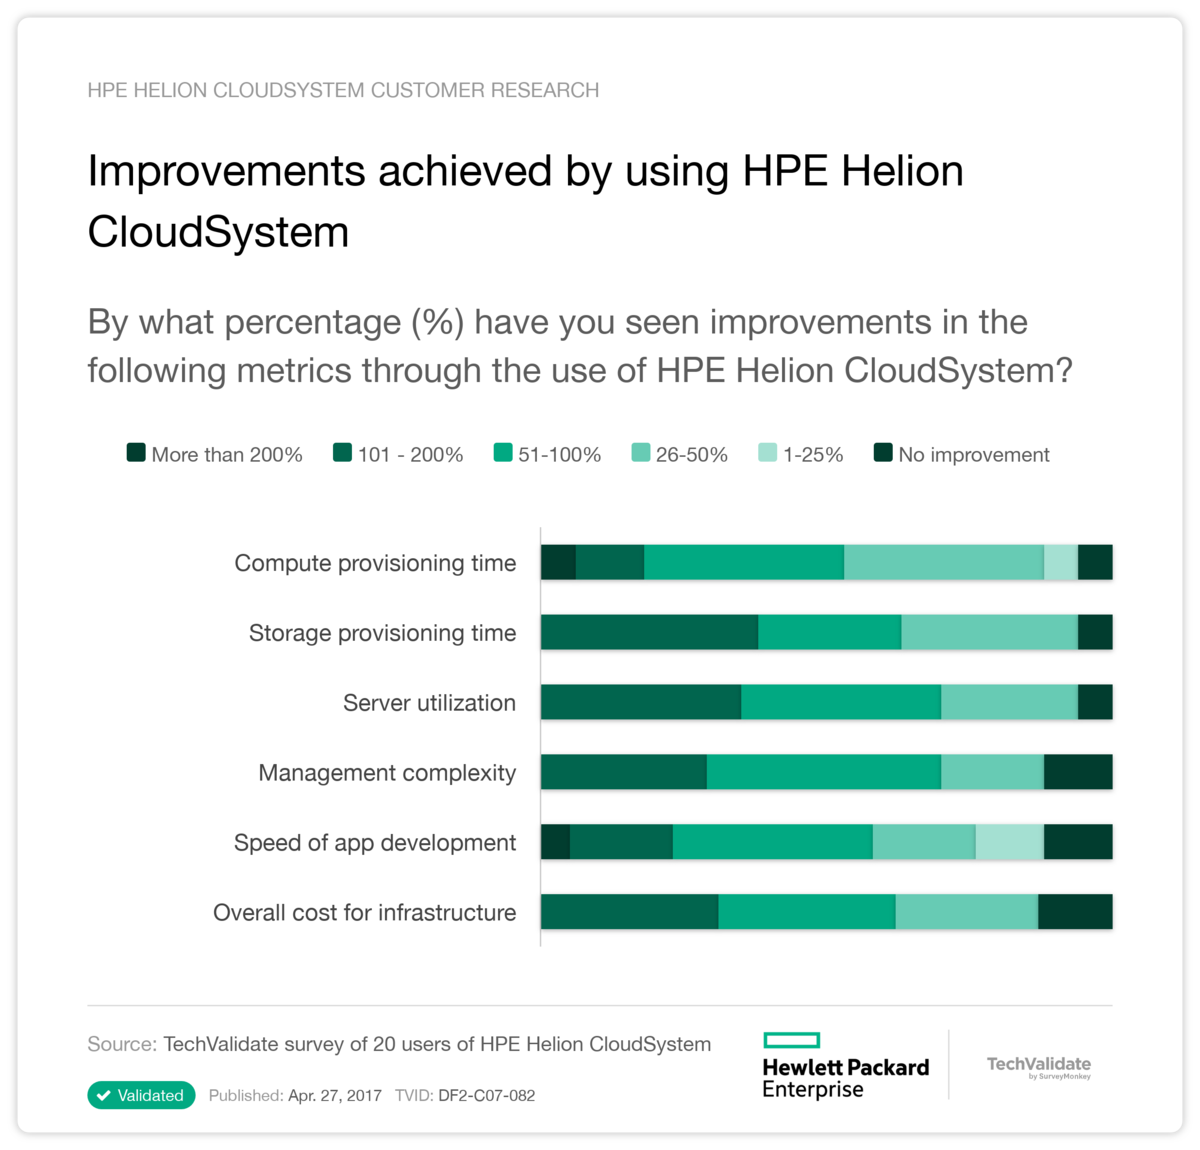 Improvements achieved by using HPE Helion CloudSystem